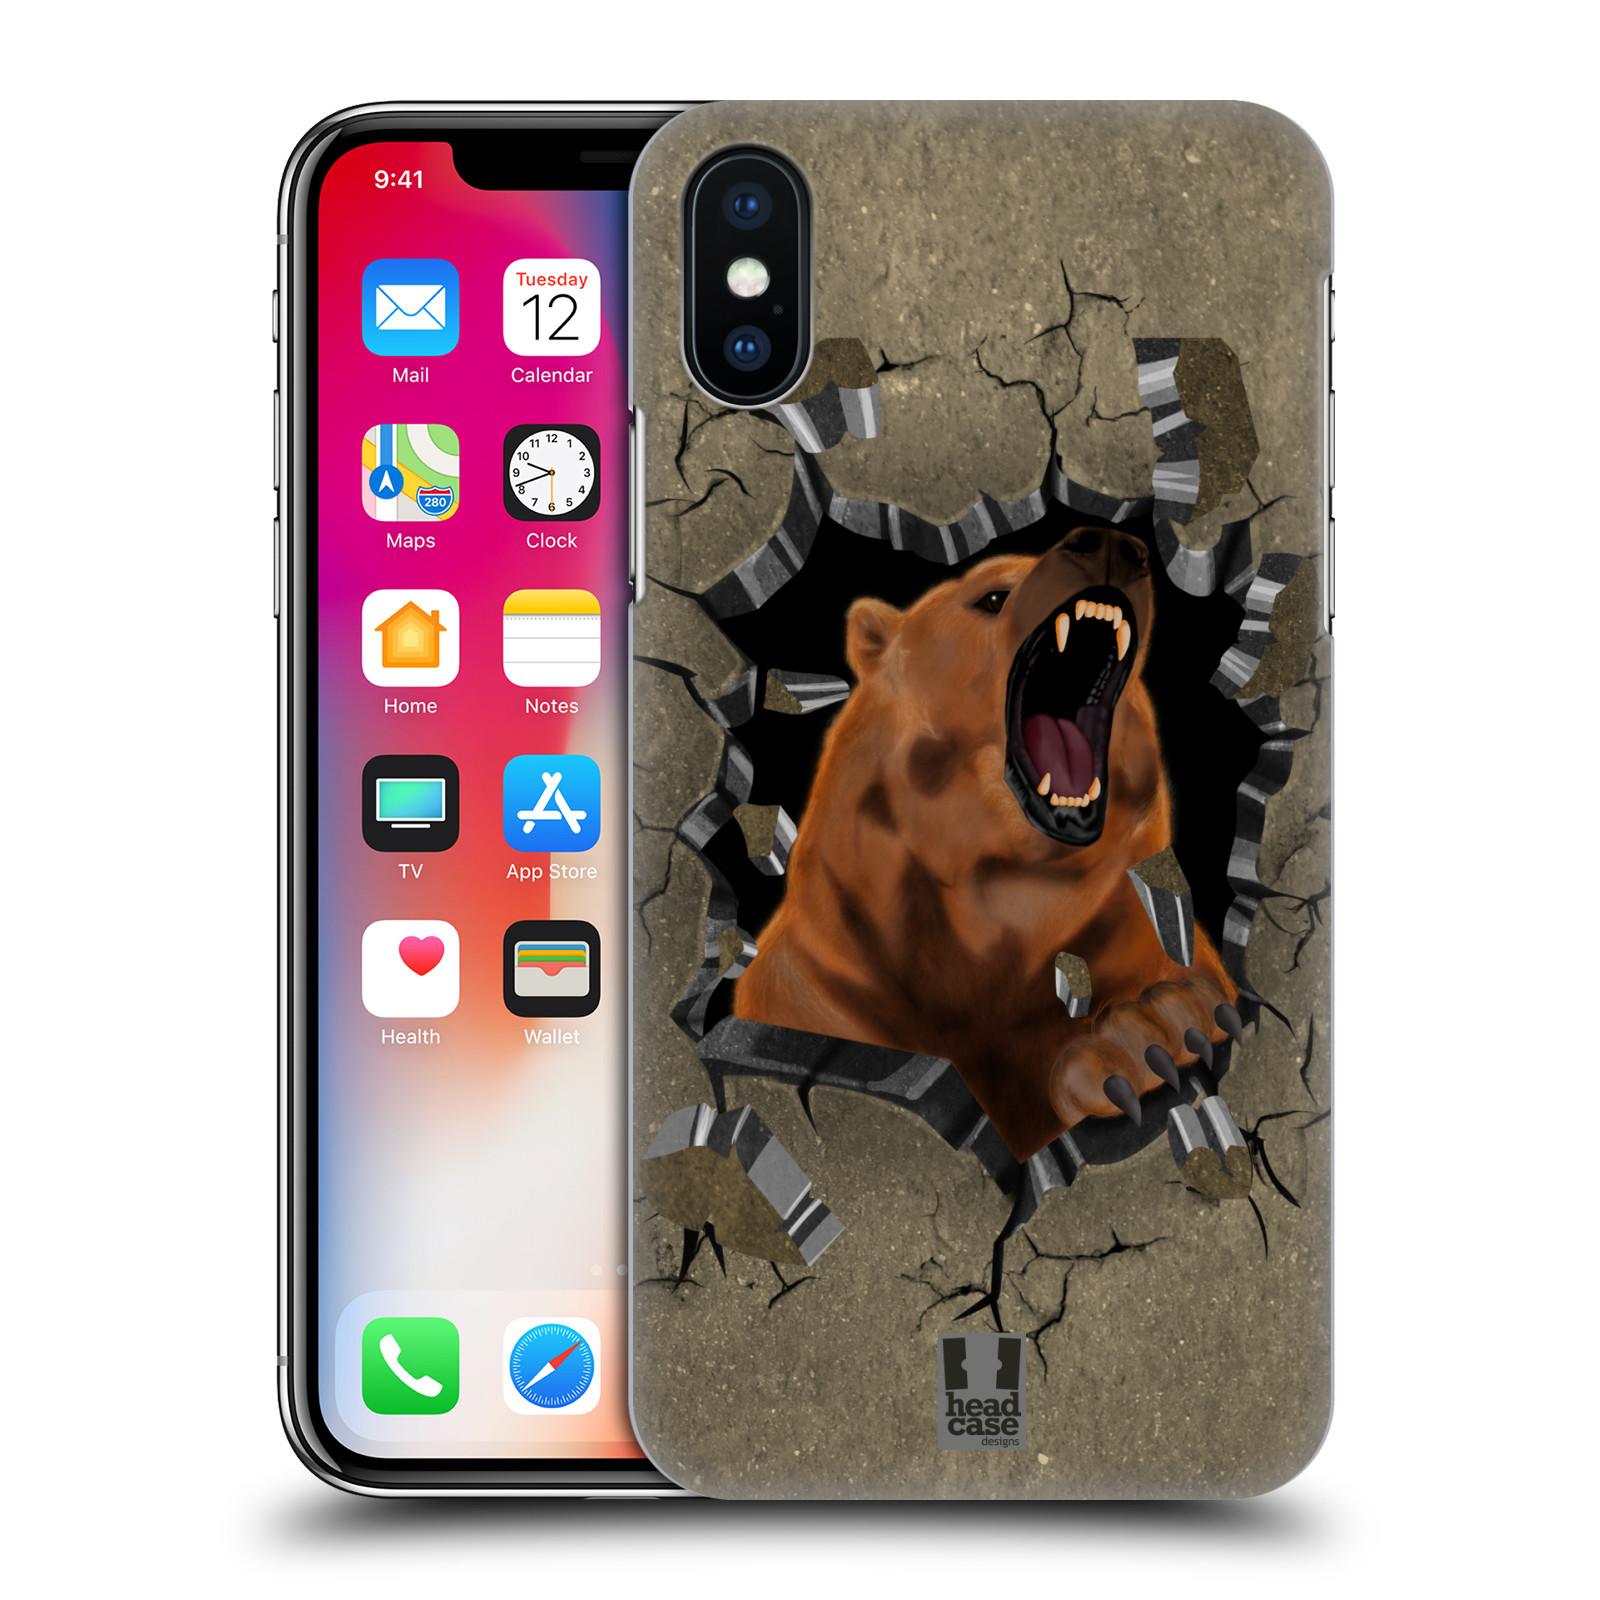 HEAD-CASE-DESIGNS-ANIMAL-RAMPAGE-HARD-BACK-CASE-FOR-APPLE-iPHONE-PHONES